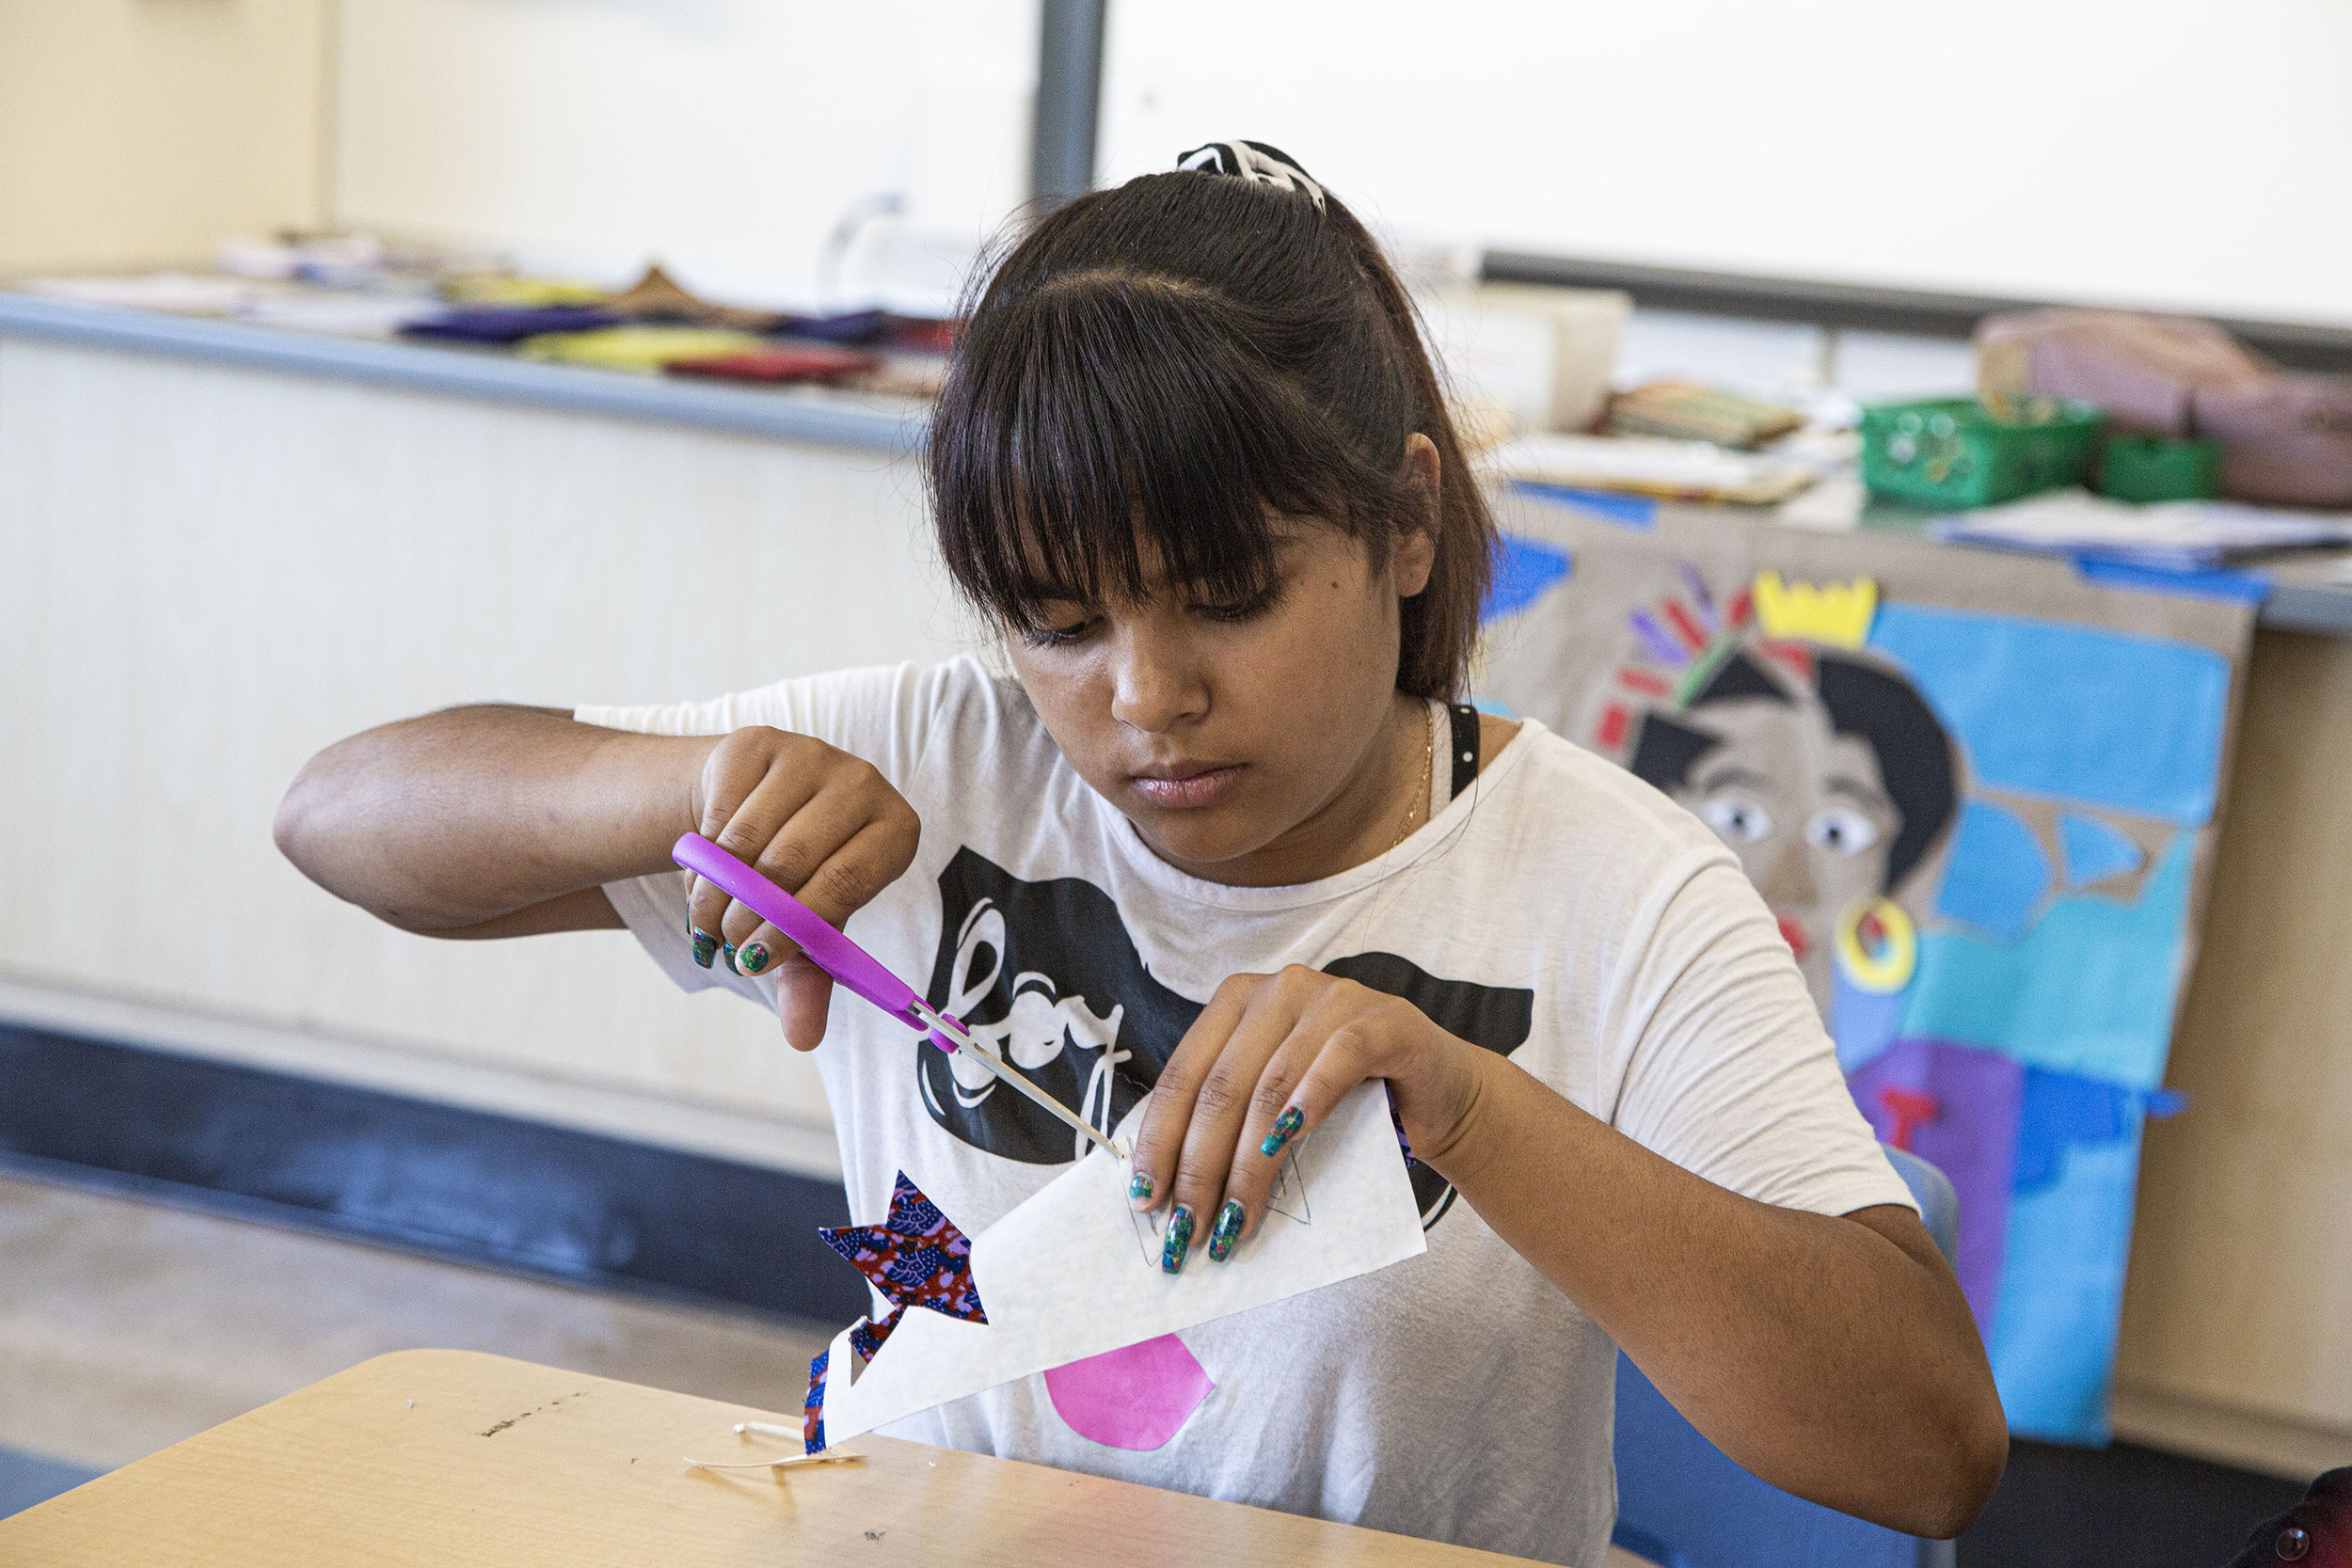 Student cuts out her first design (West Oakland Middle School)